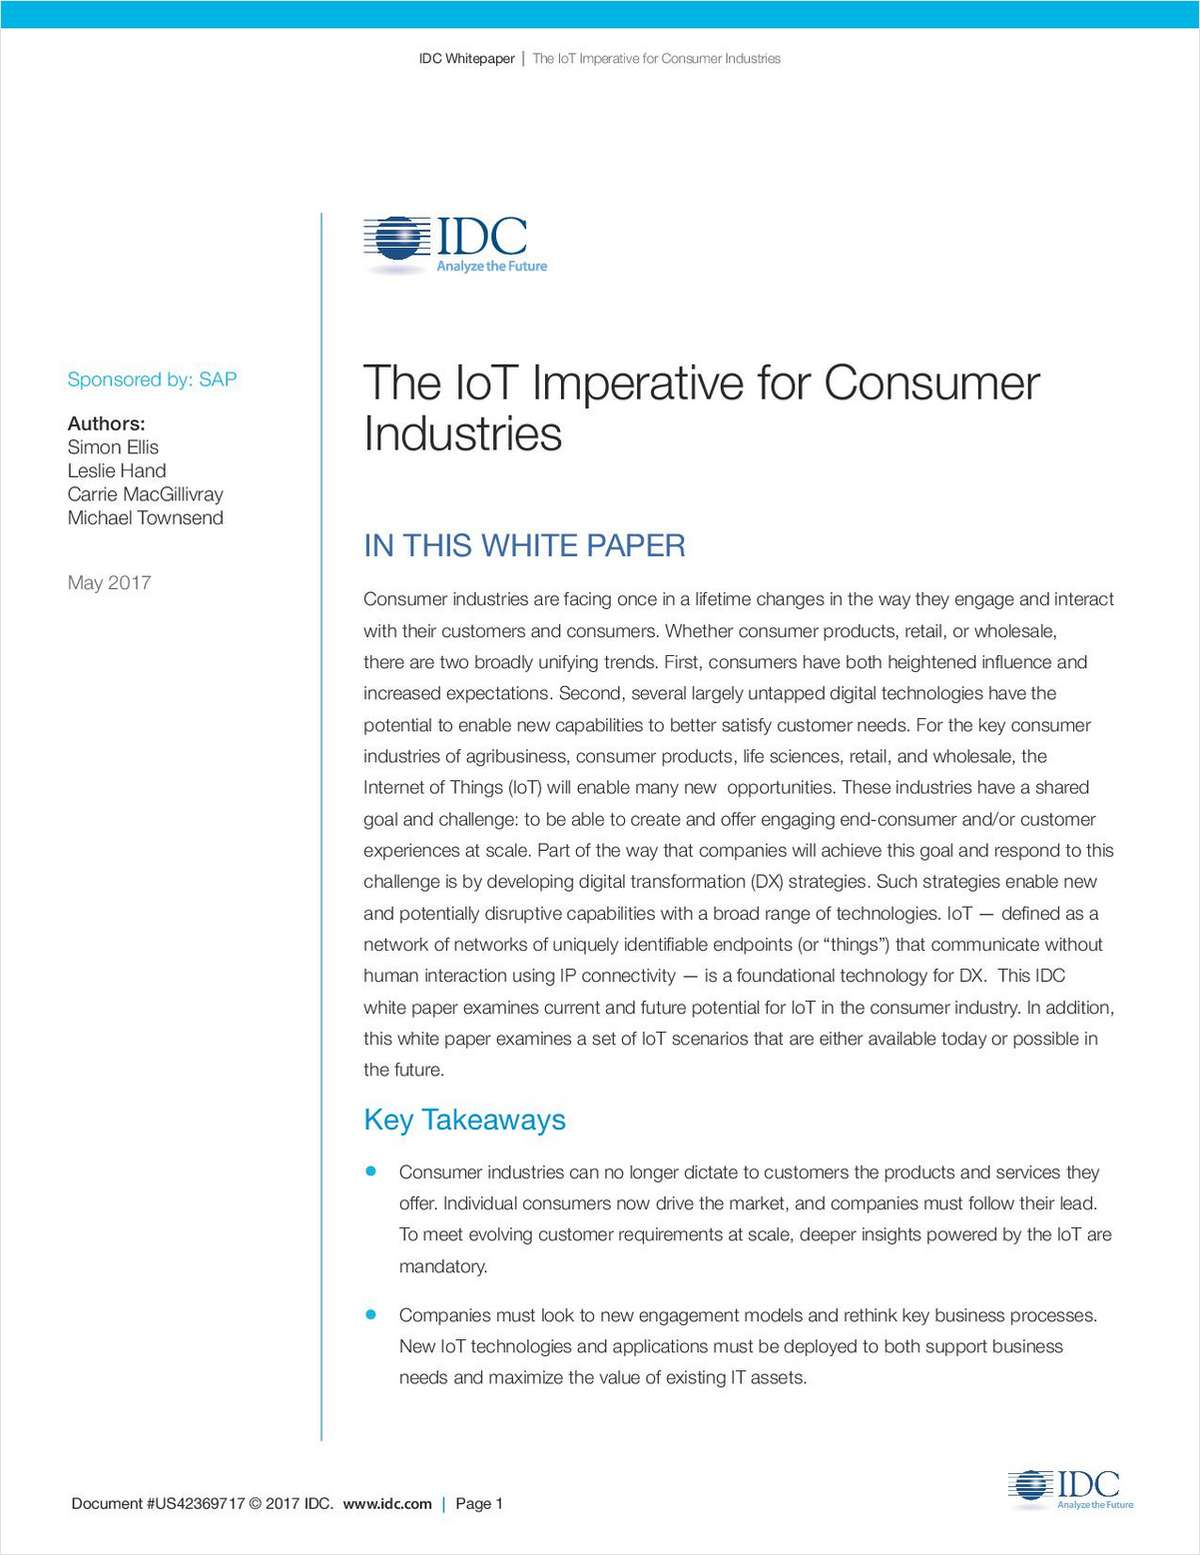 The IoT Imperative for Consumer Industries